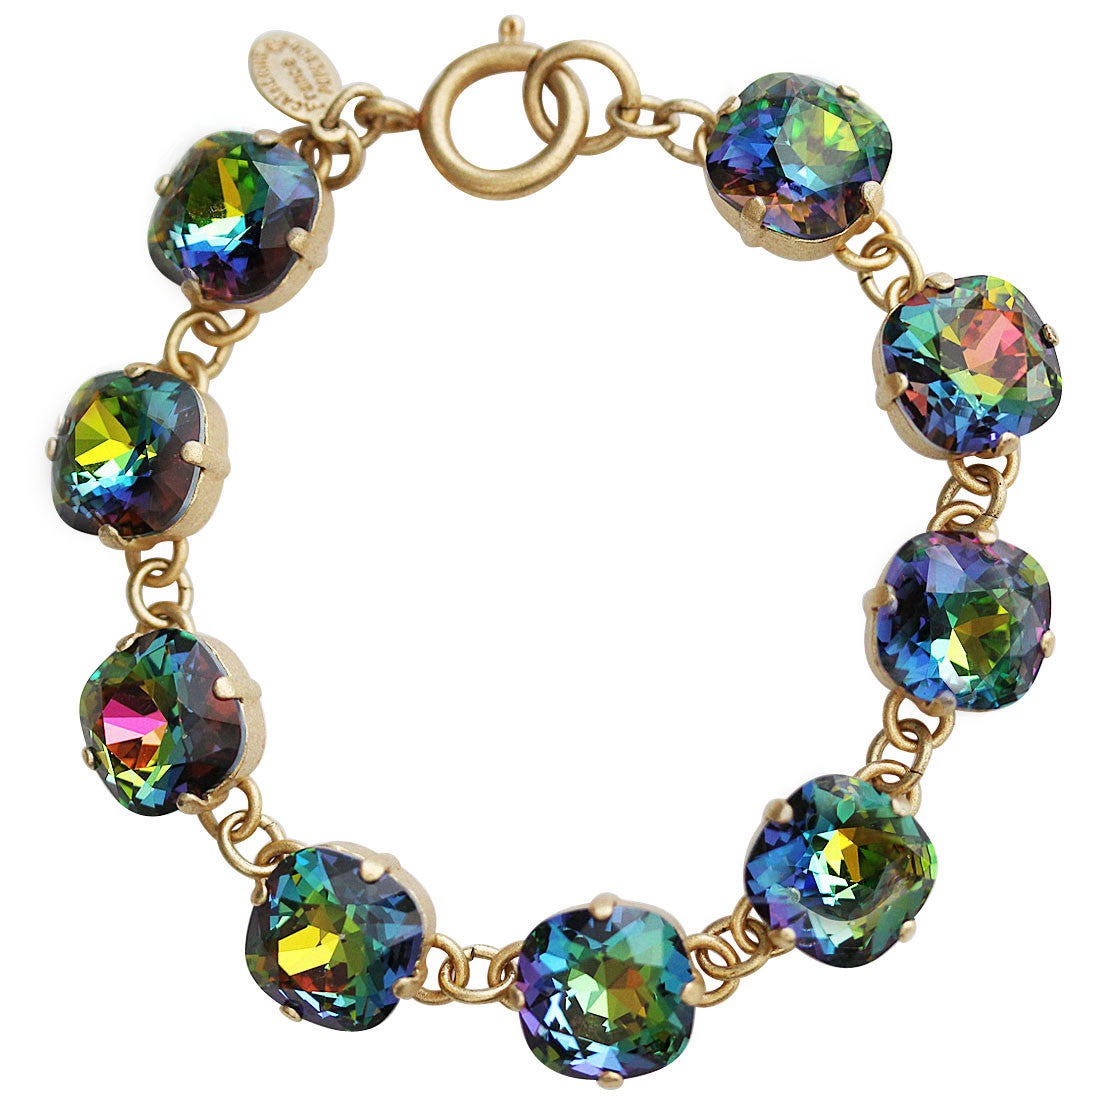 "Catherine Popesco 14k Gold Plated Crystal Round Bracelet, 7.25"" 1696G Heavy Vitrail (Rainbow) * Limited Edition *"